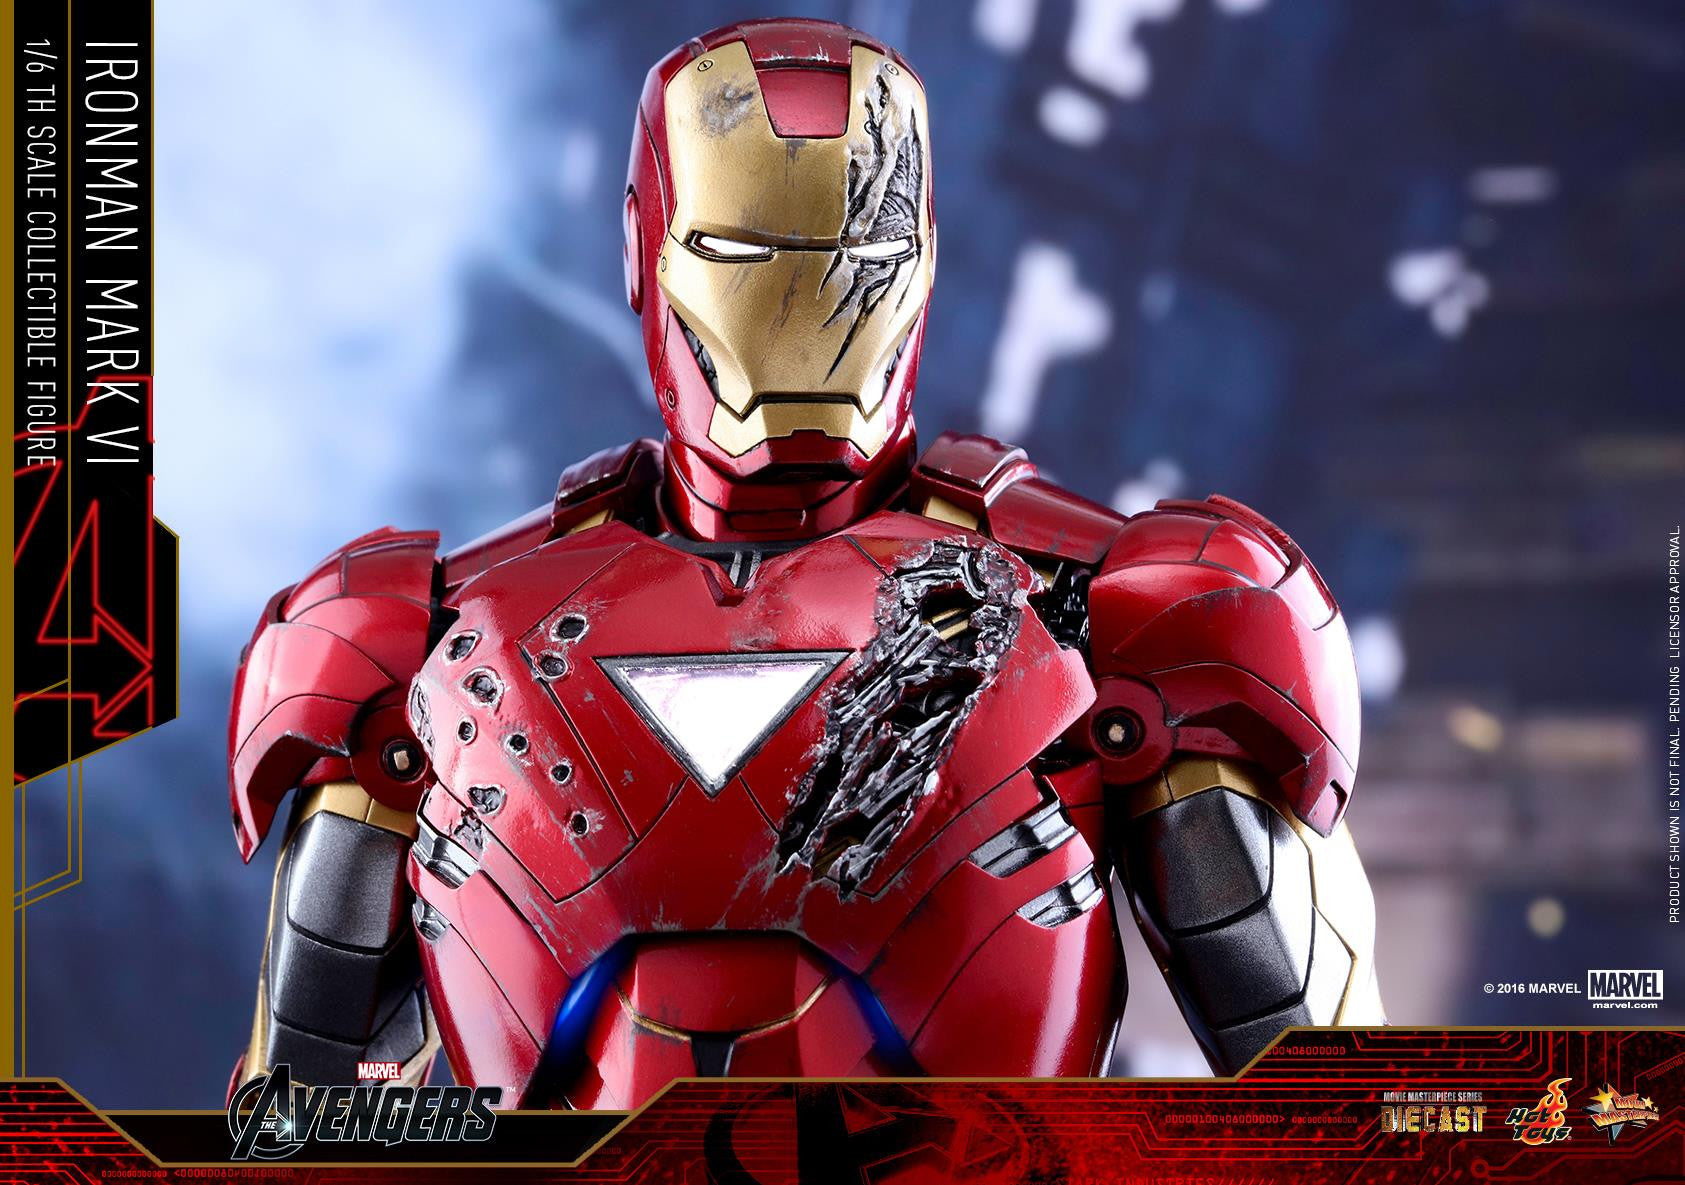 Hot Toys - MMS378D17 - The Avengers - Iron Man Mark VI (DIECAST) (Normal Edition) - Marvelous Toys - 22